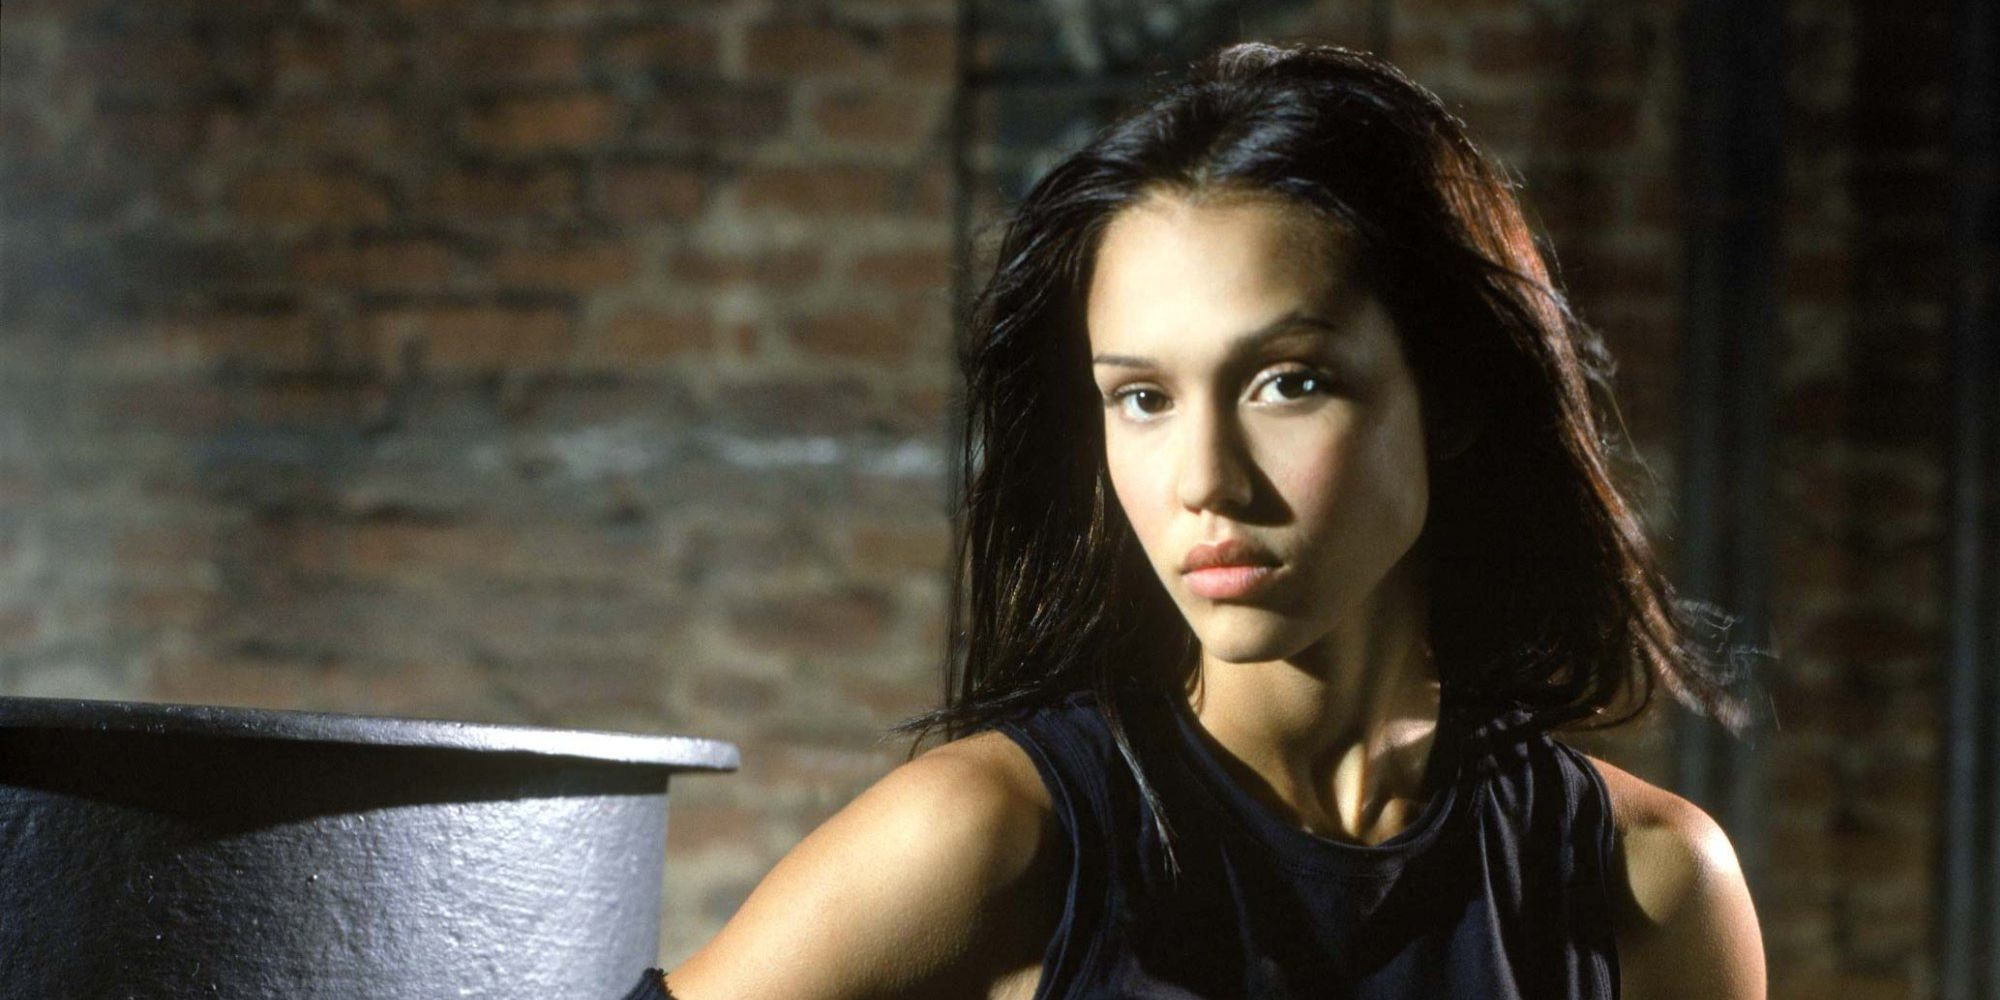 Bad Boys TV Spinoff Casts Jessica Alba As Co-Lead